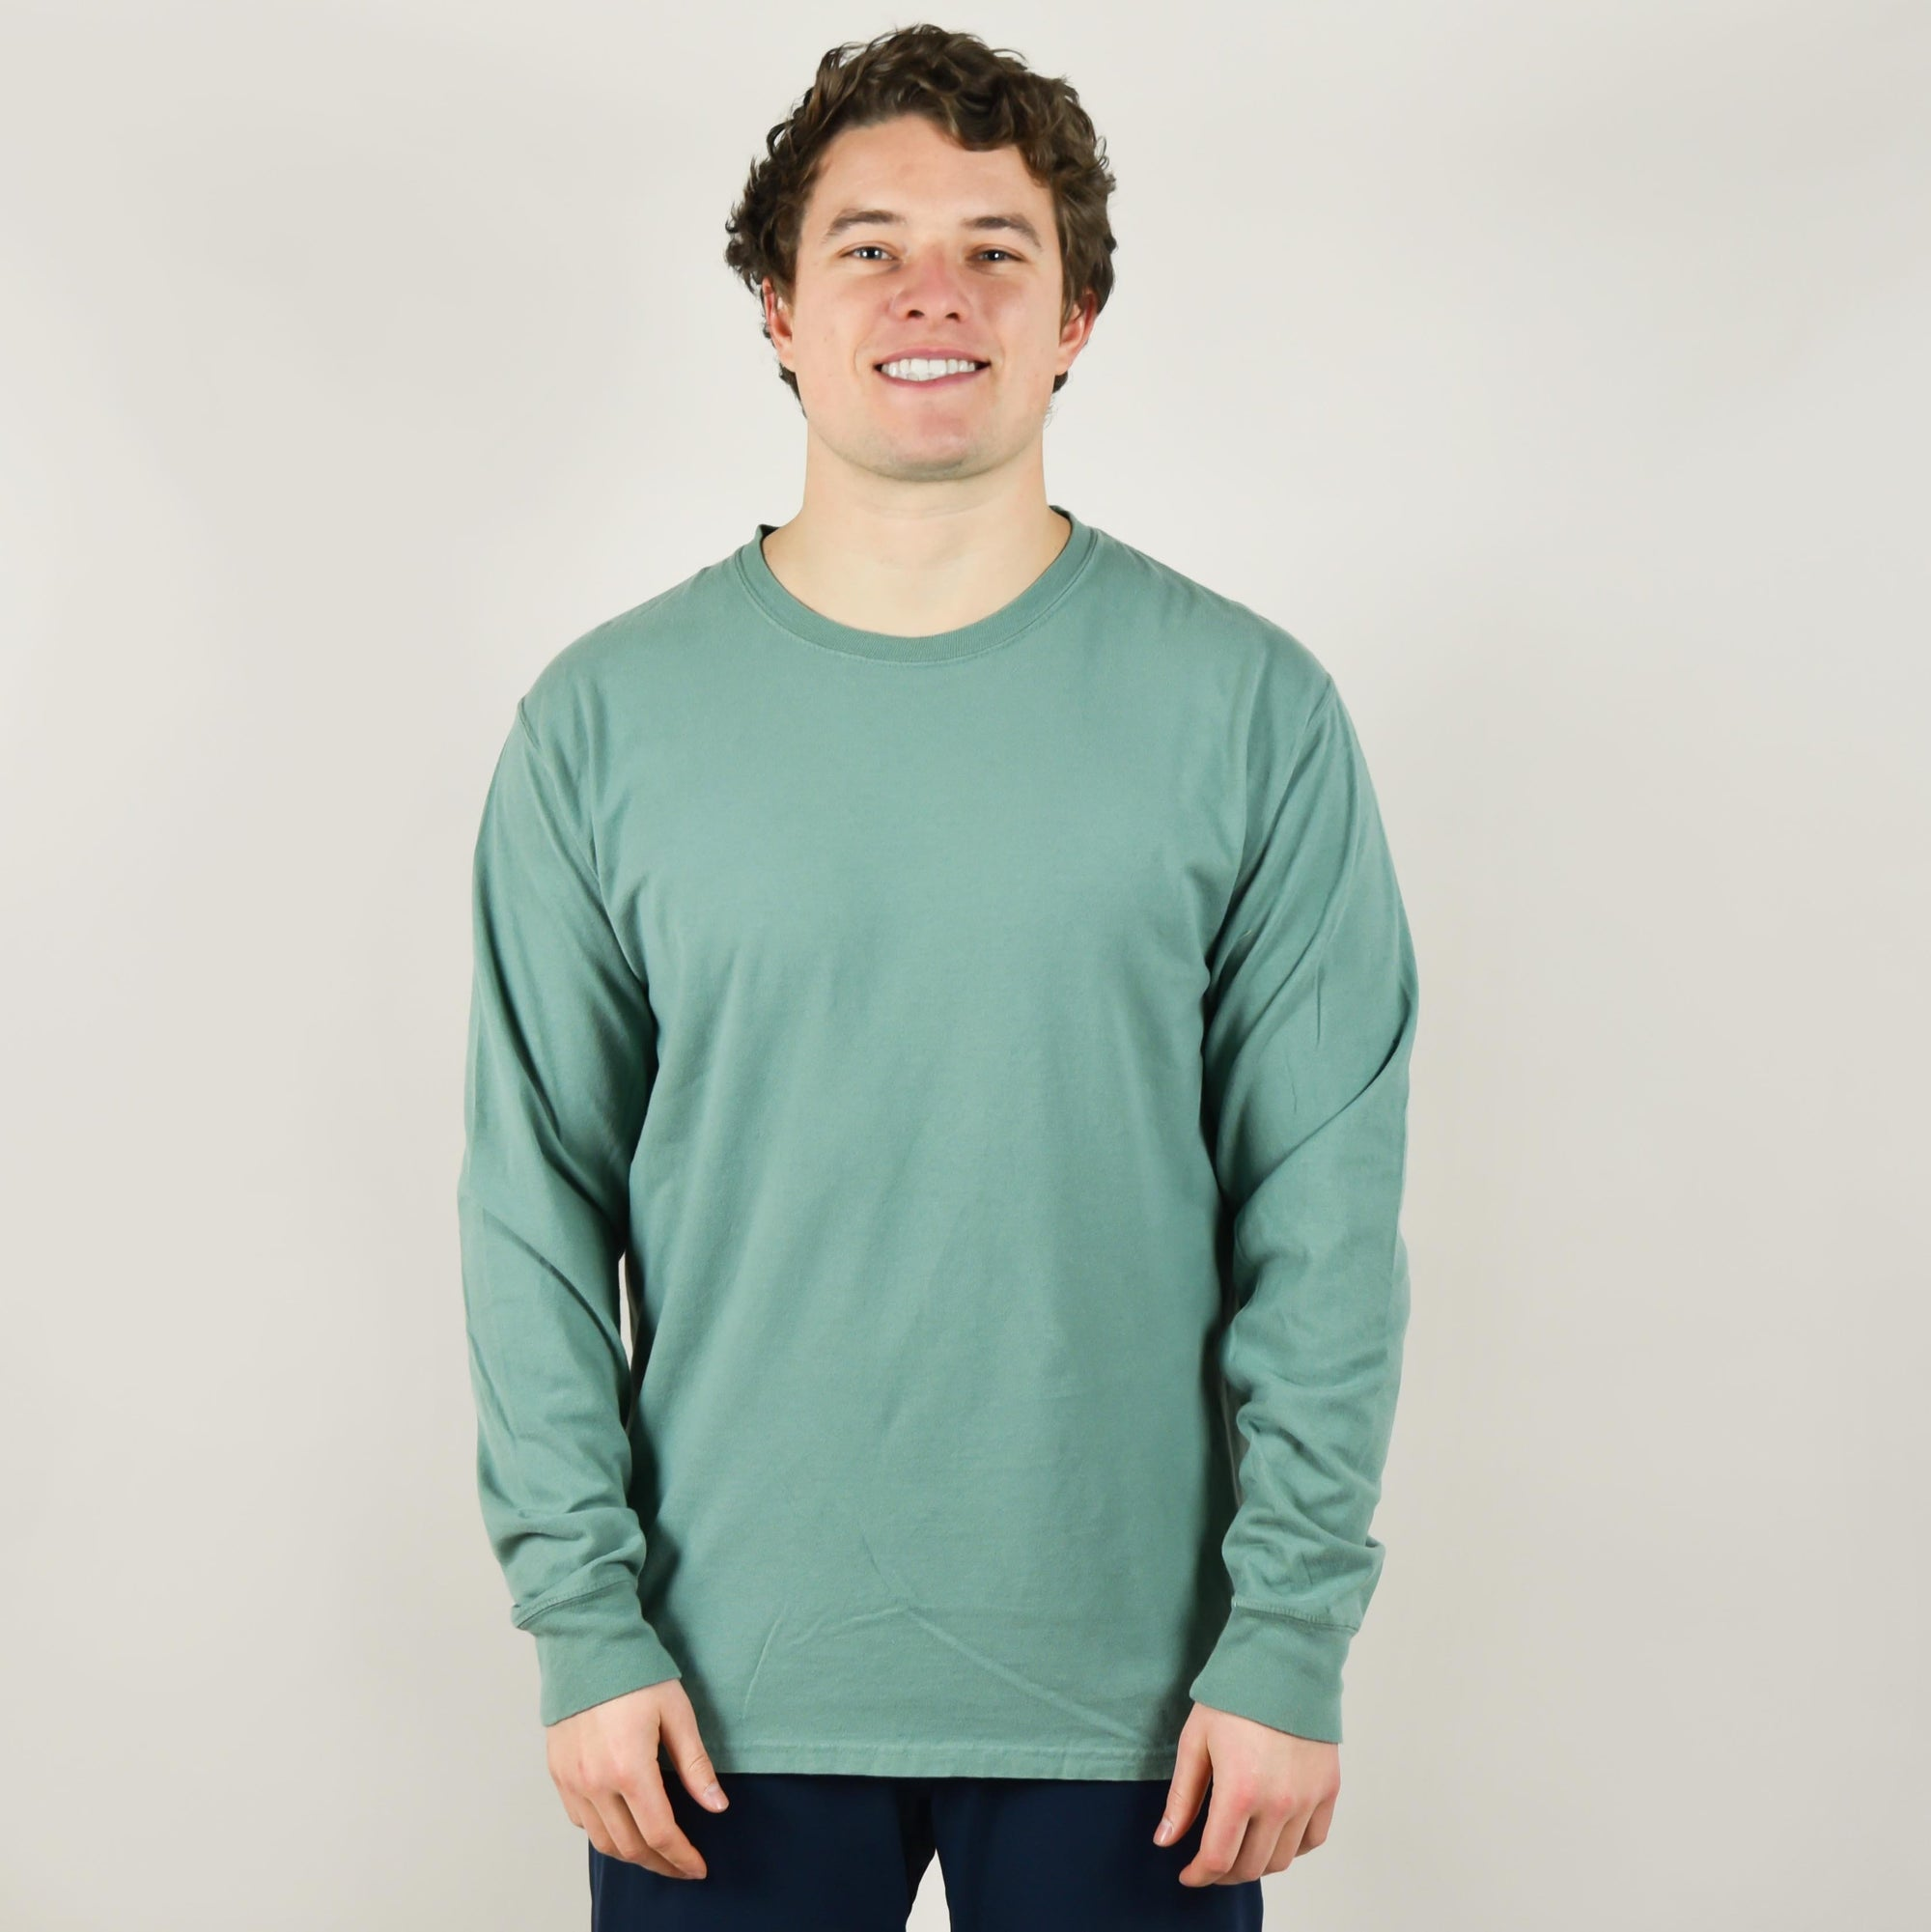 Model wearing Comfort Wash GDH200 Long Sleeve Crew Neck